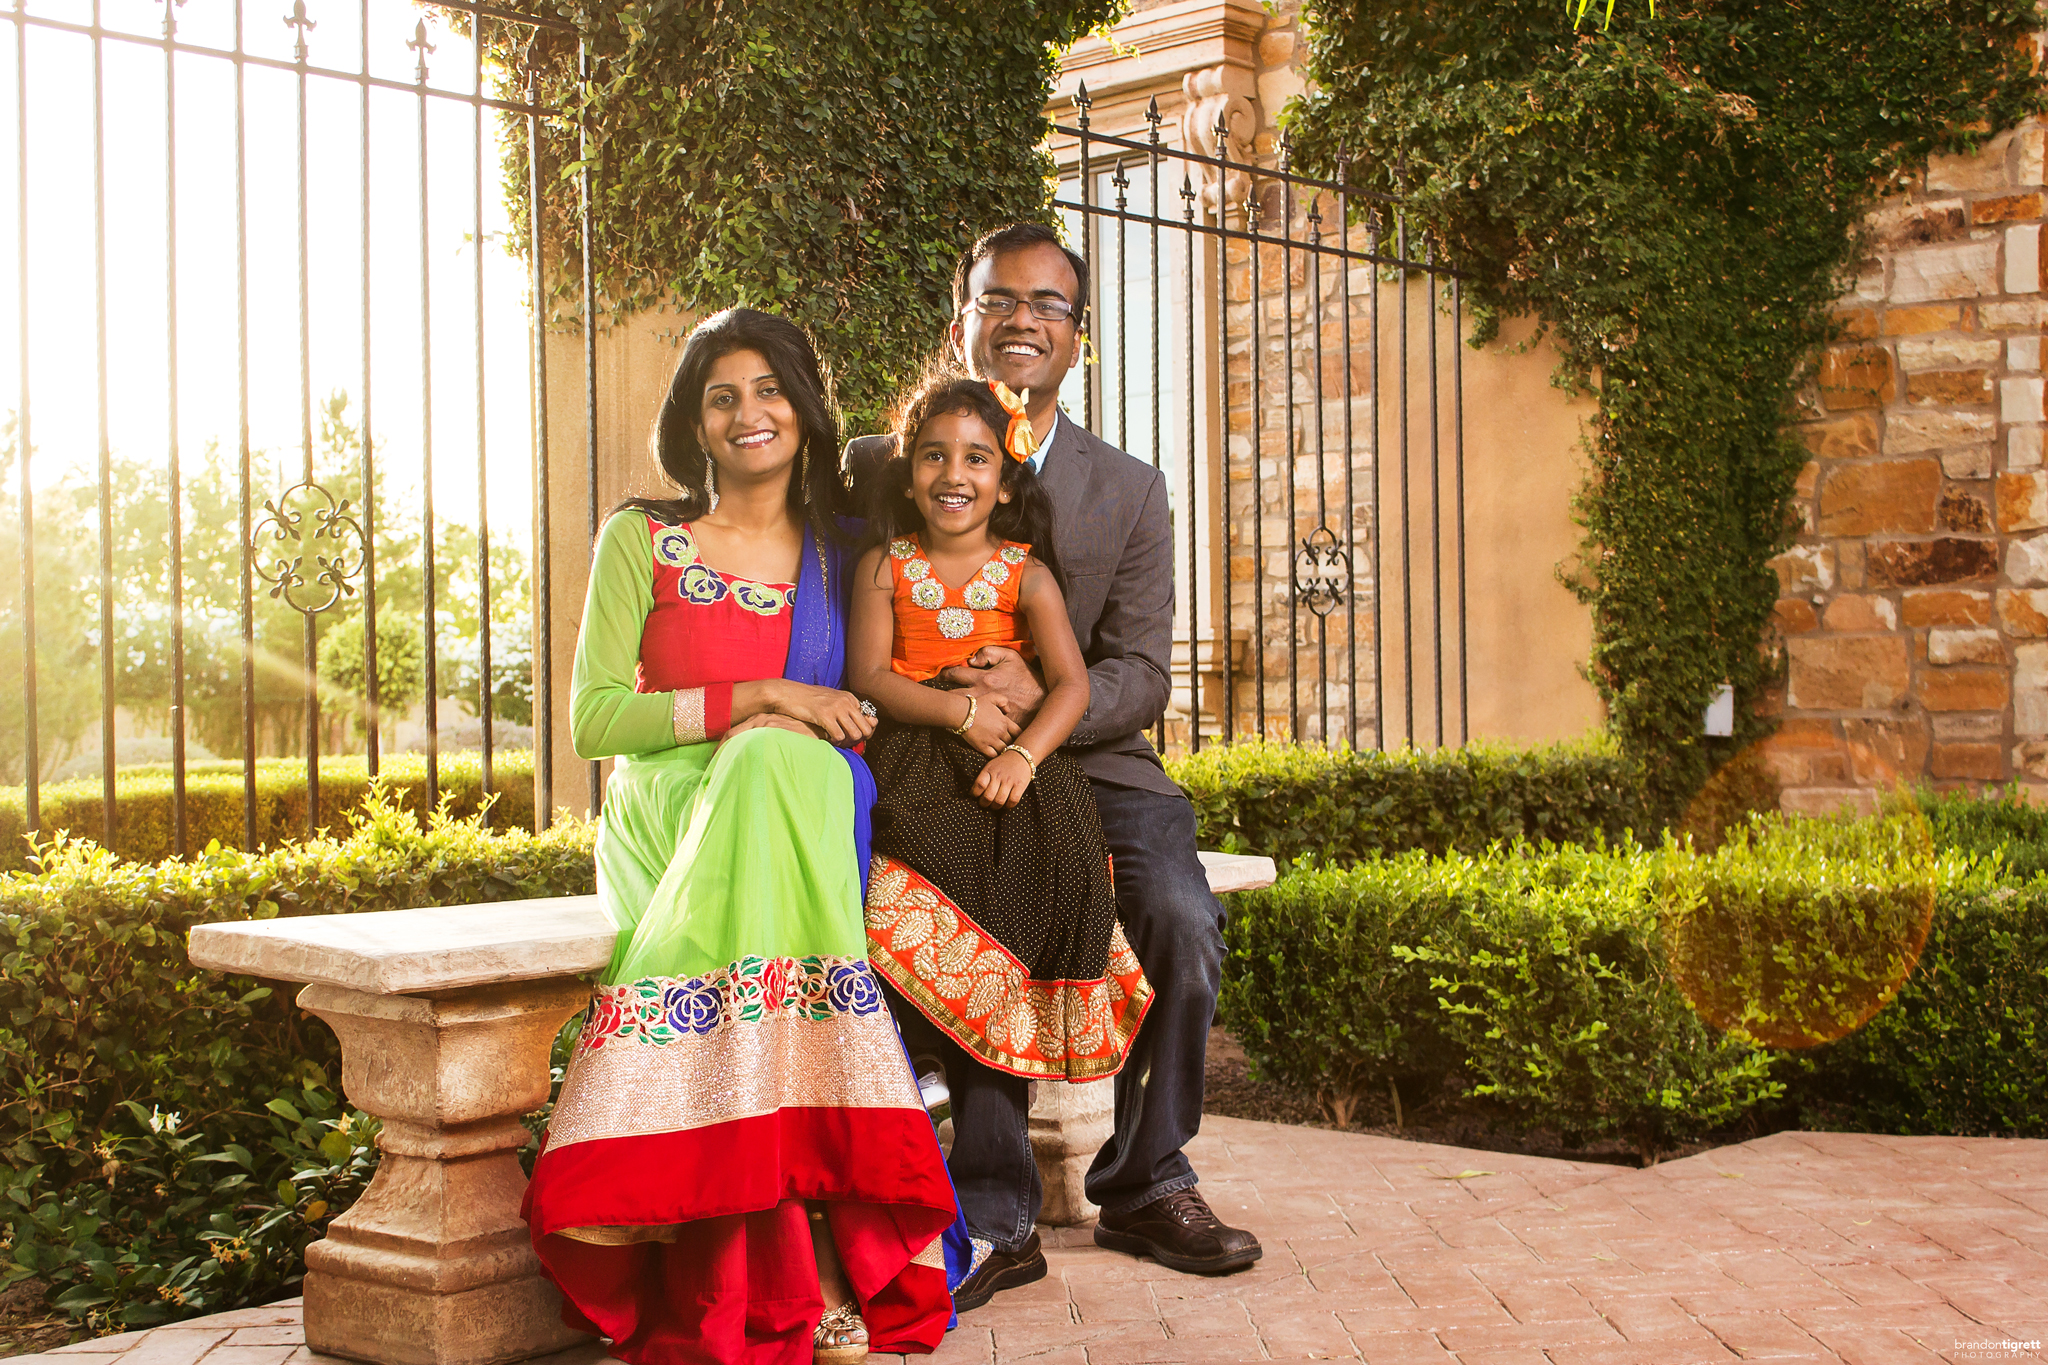 2014_Brandon-Tigrett_Scottsdale_Family_Deepika-159_Retouched_WEB.jpg